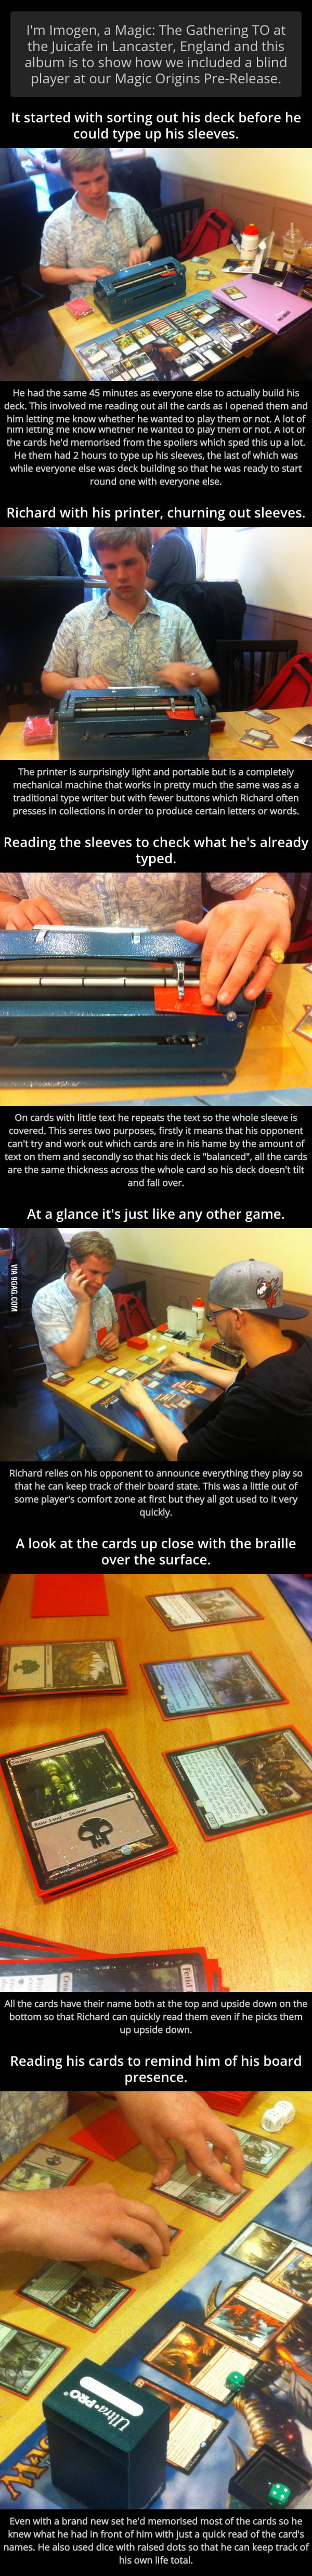 They Included A Blind Player At Their Magic Origins Pre-Releases